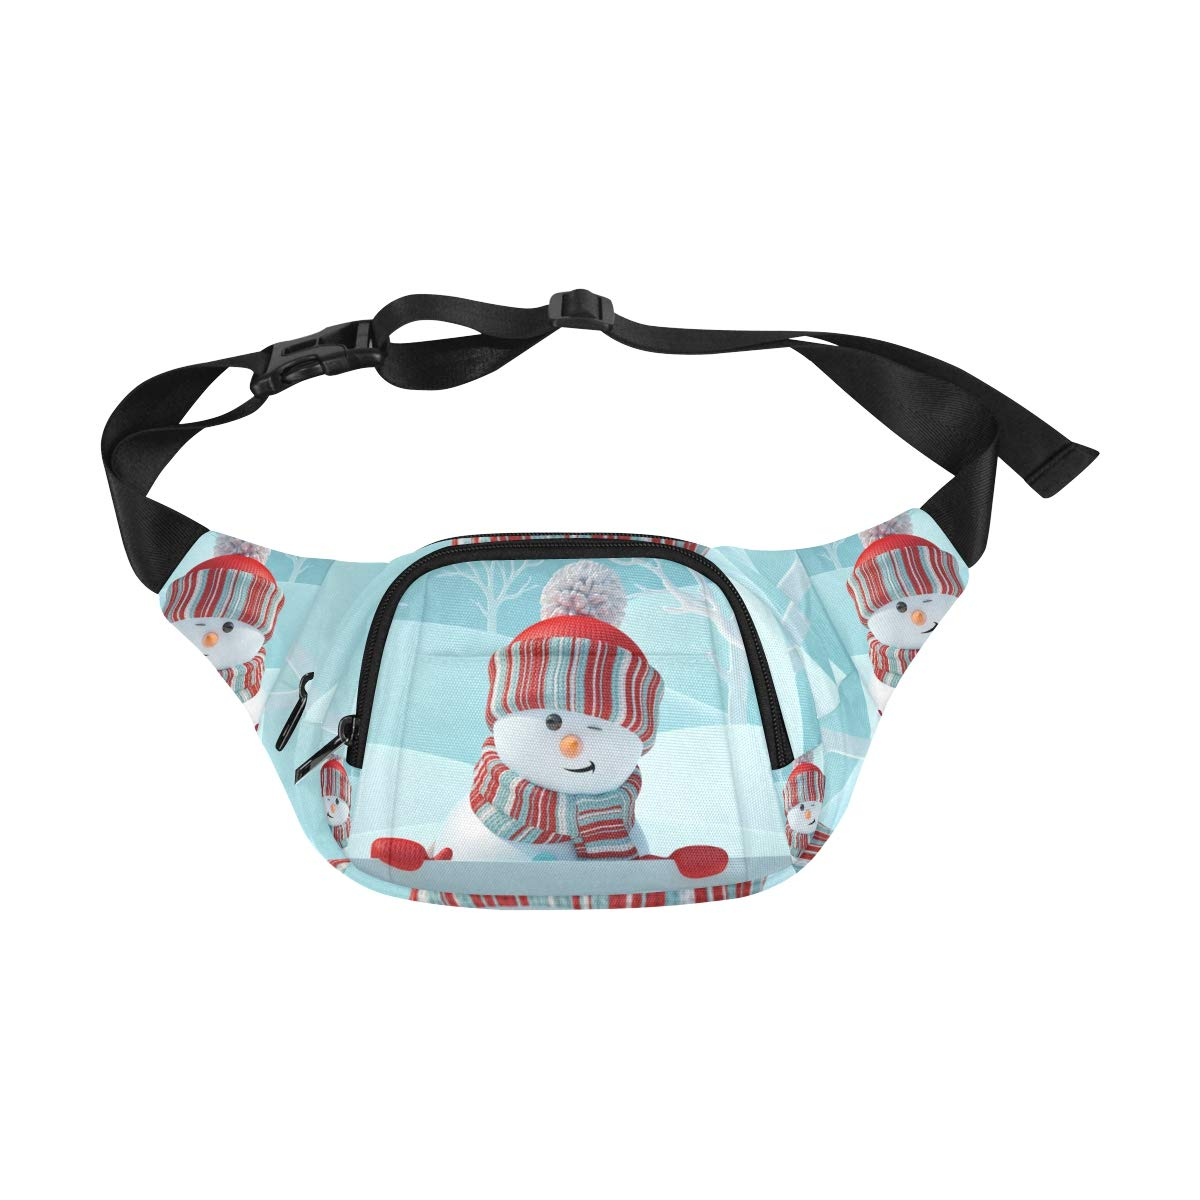 Happy White Snowman In Winter Fenny Packs Waist Bags Adjustable Belt Waterproof Nylon Travel Running Sport Vacation Party For Men Women Boys Girls Kids